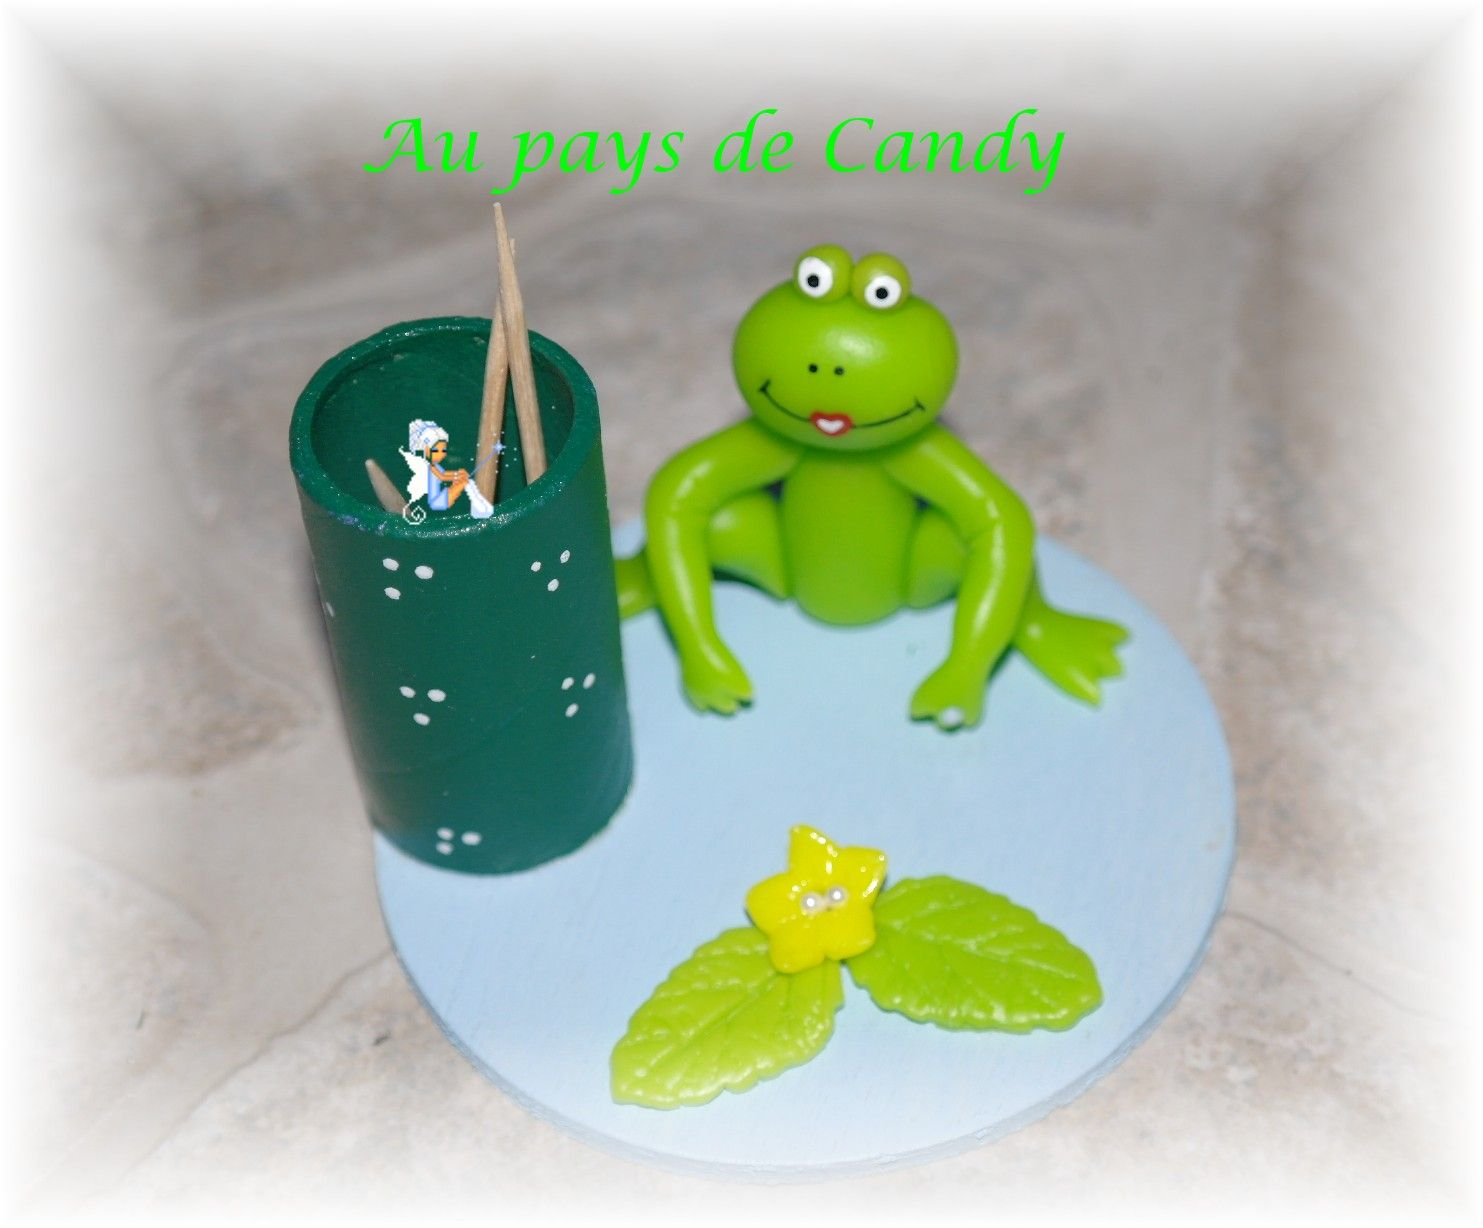 grenouille porte cure-dents porcelaine froide